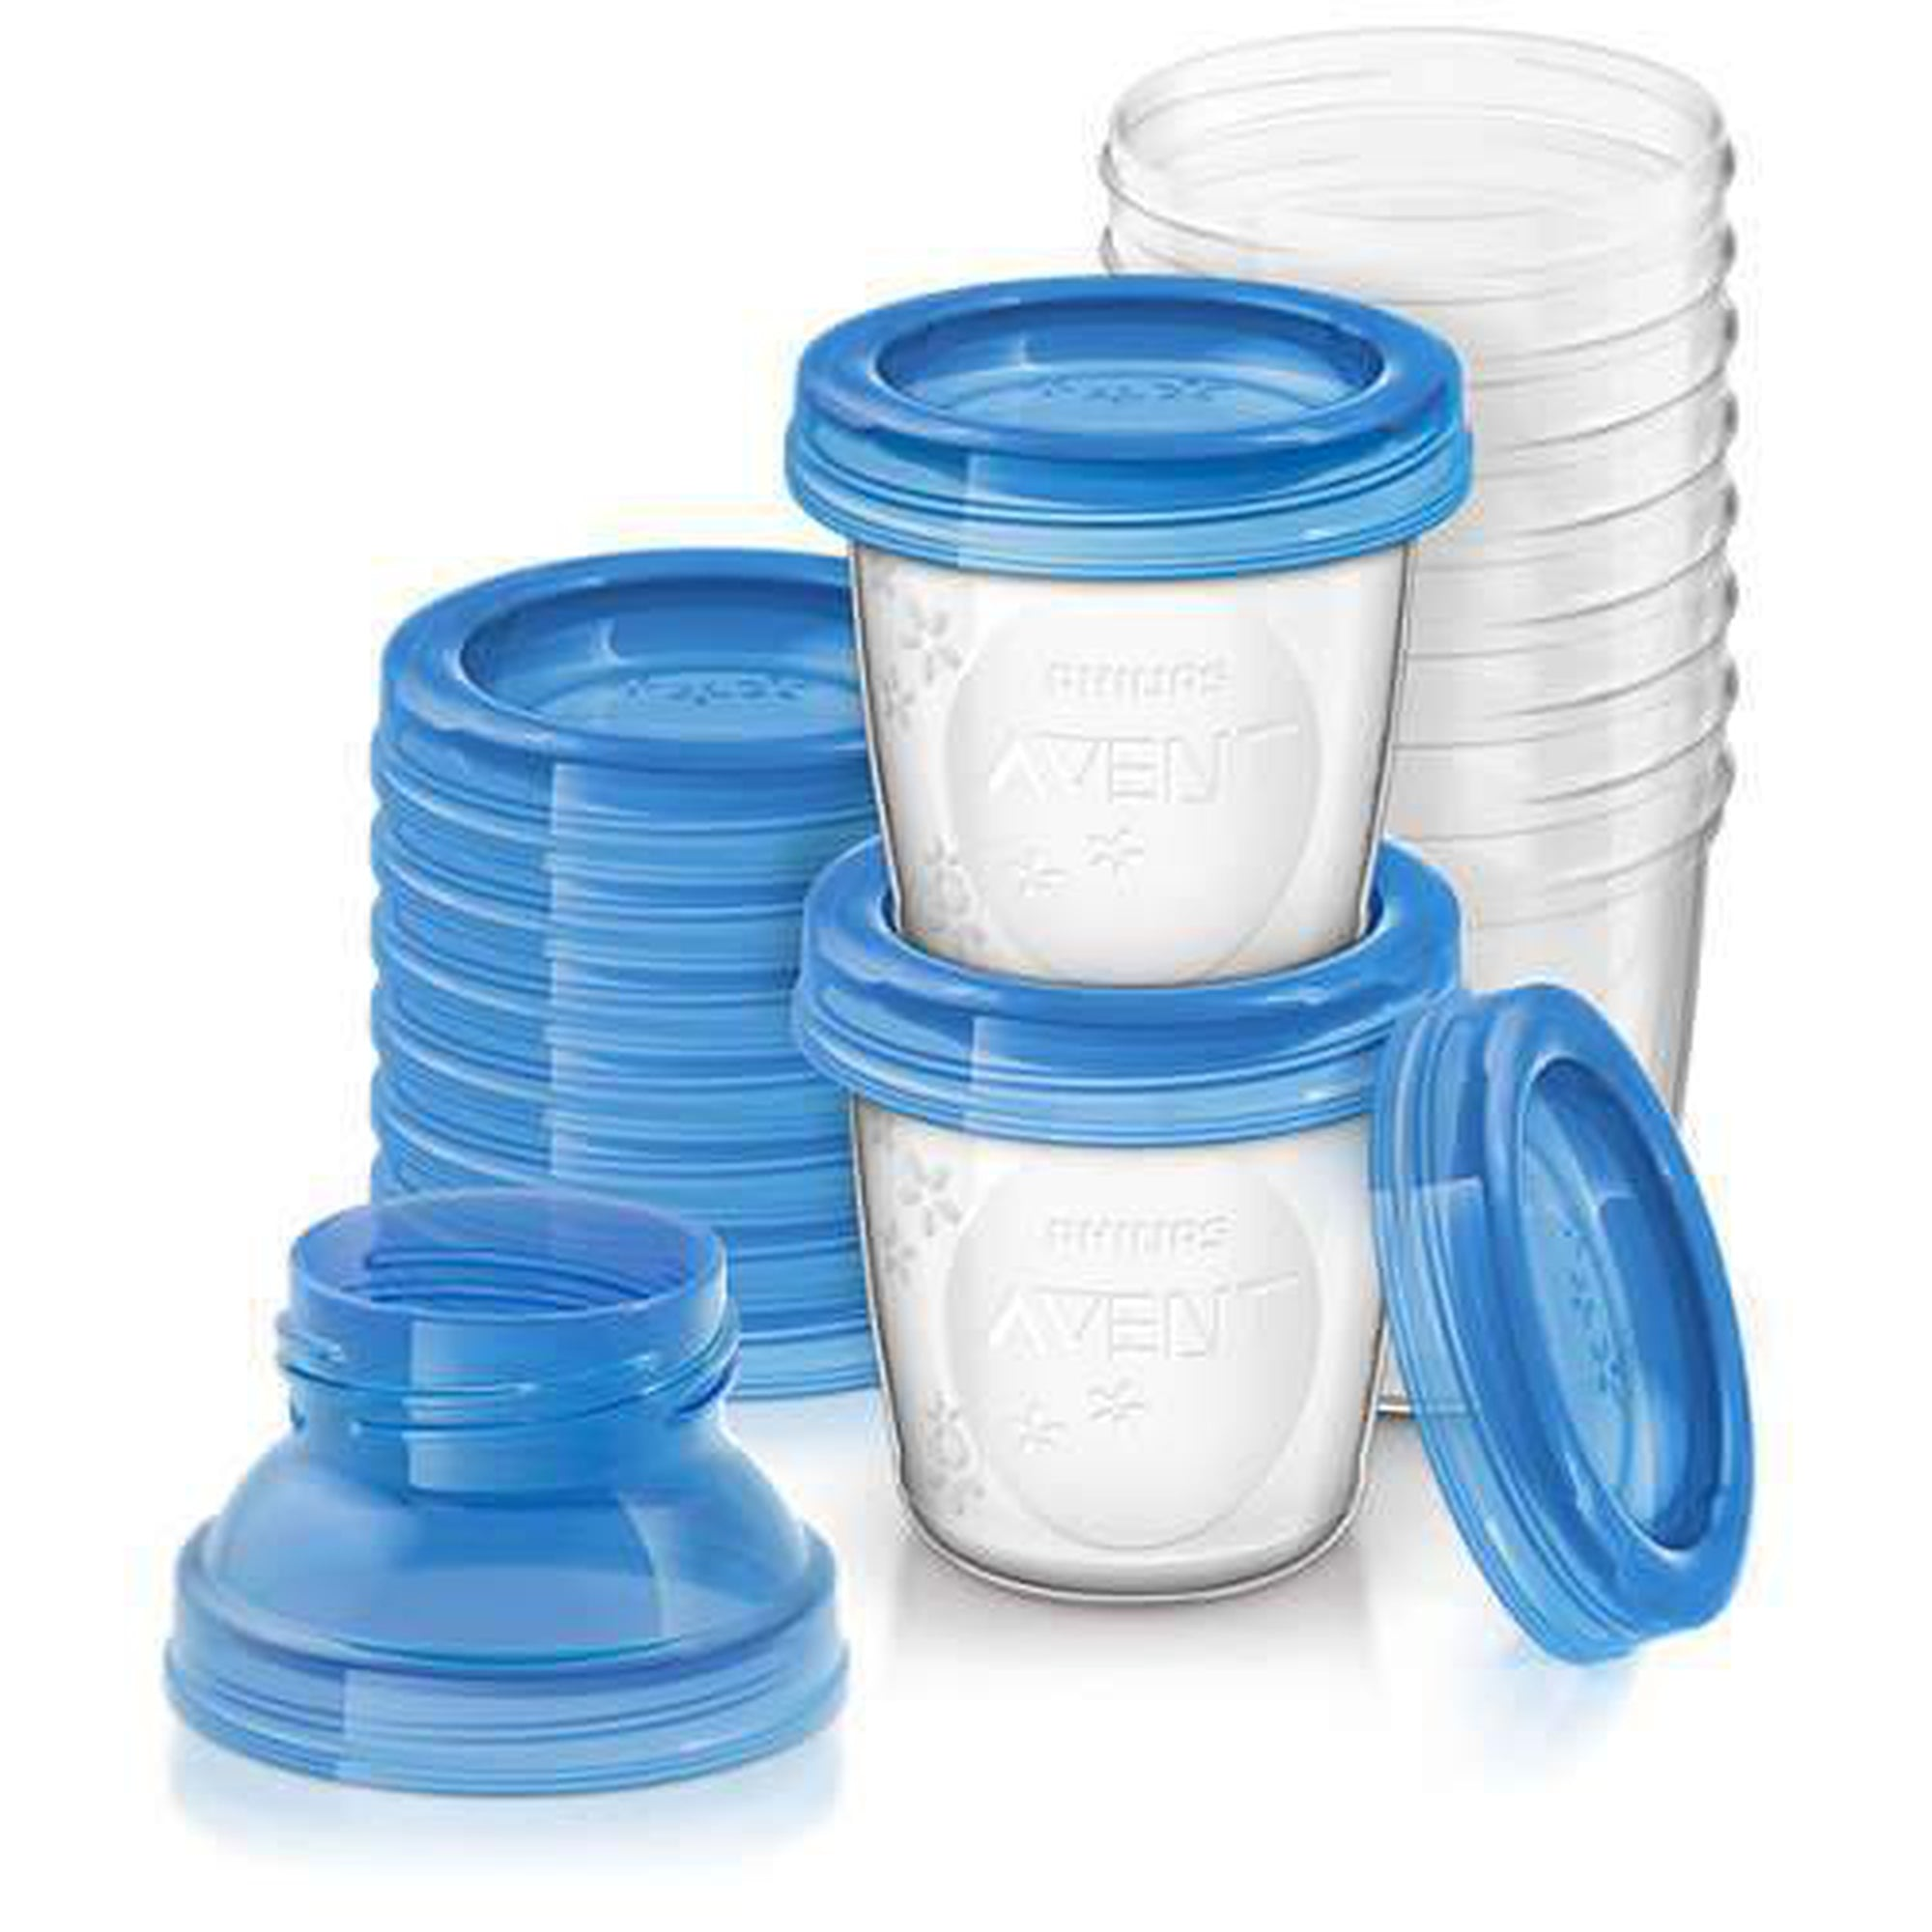 Avent 10 Breast Milk Storage Cups 180ml-Breastmilk Storage-Mother and Baby Shop Kenya's #1 Online Baby Shop